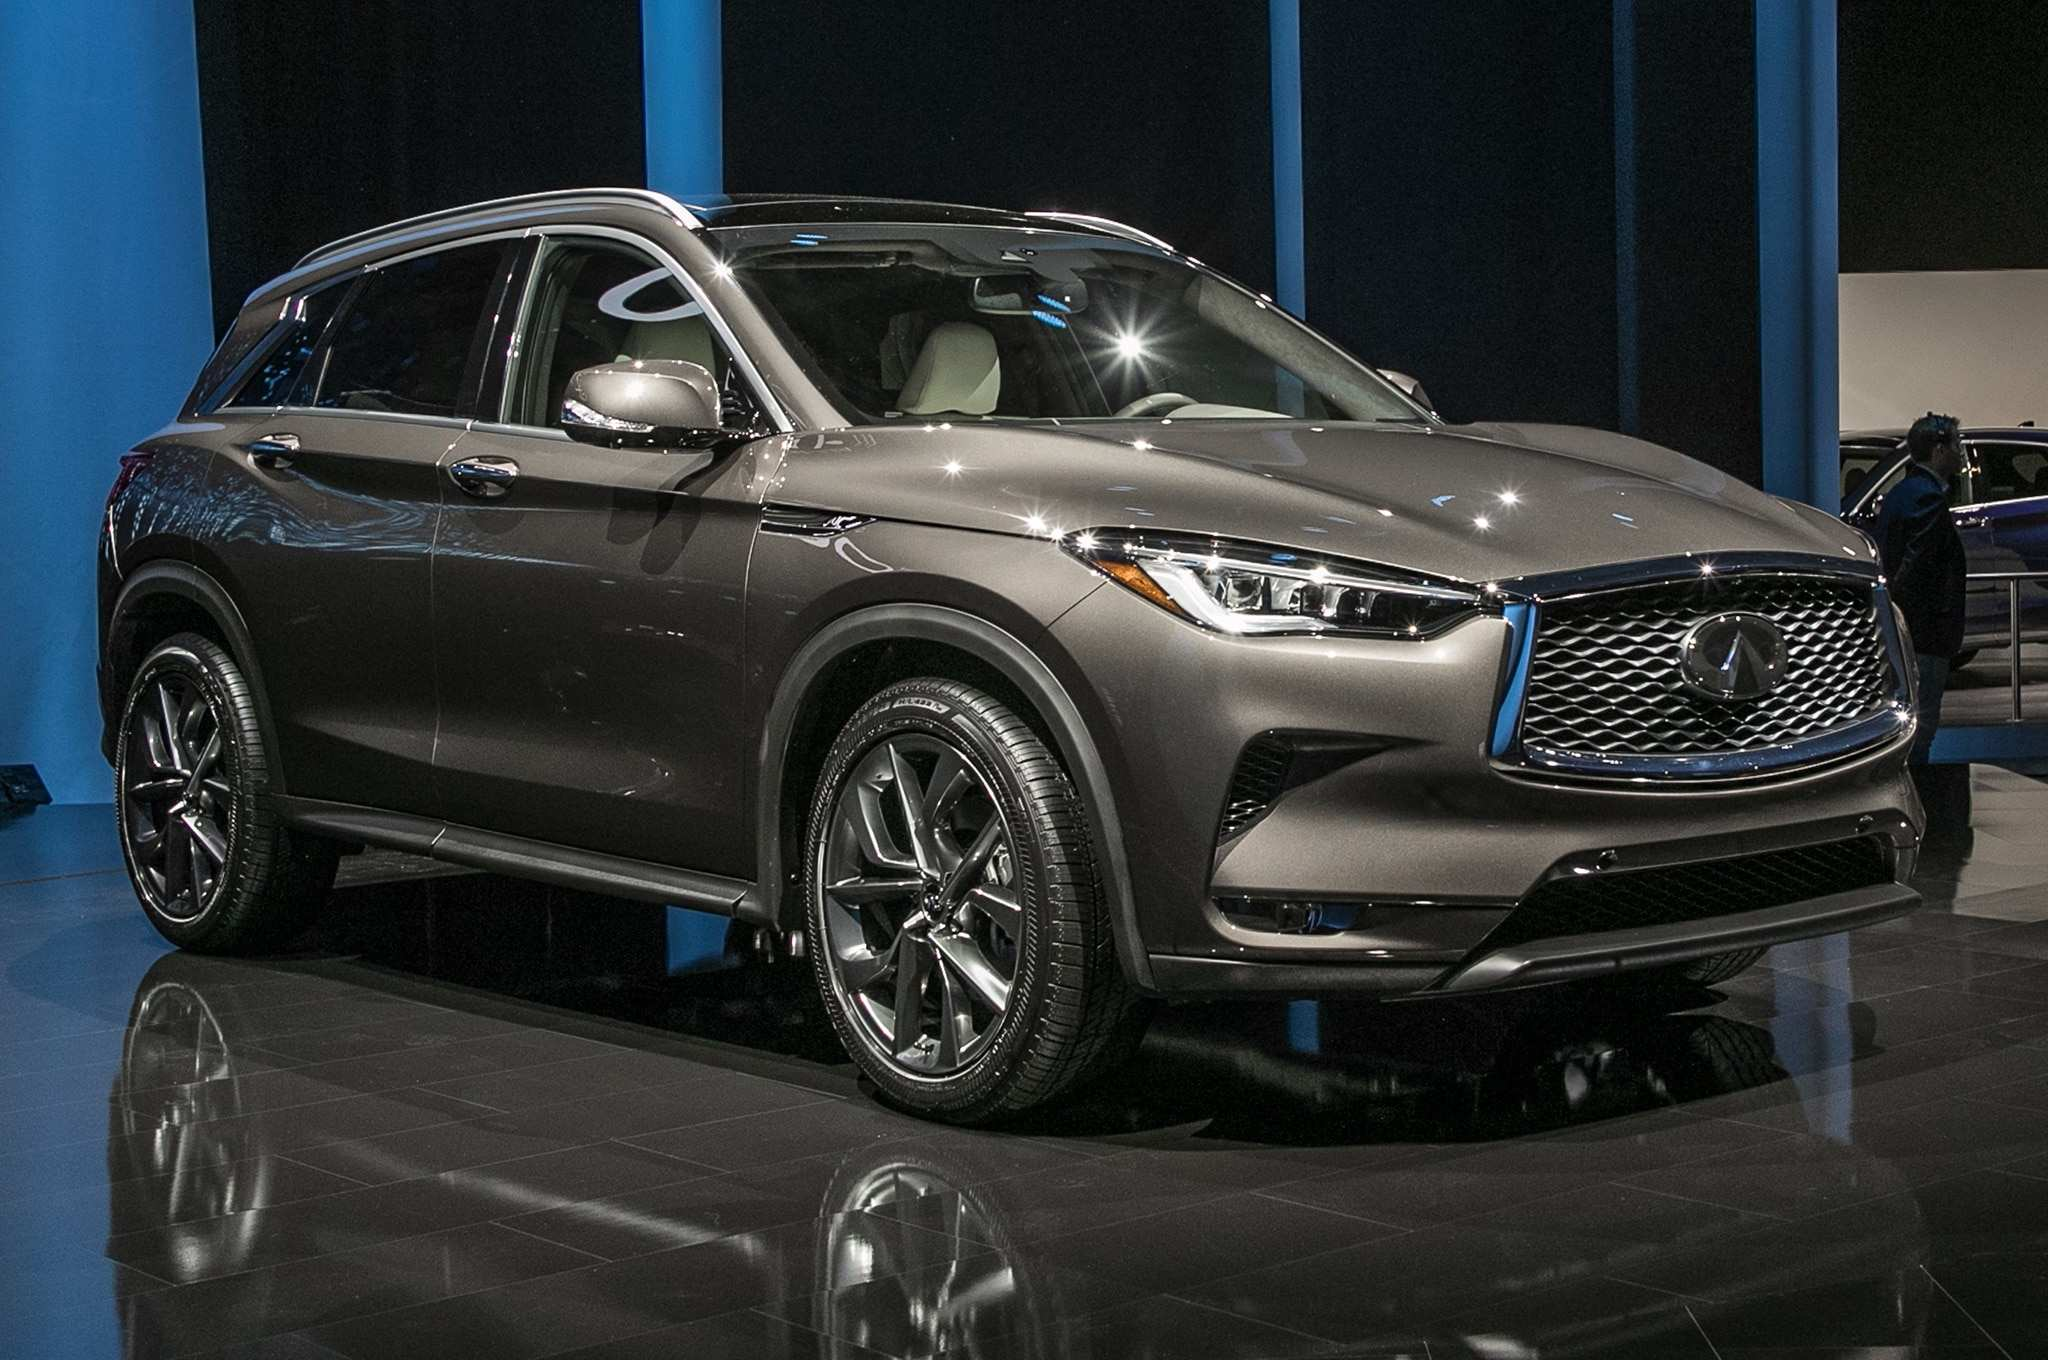 22 New 2020 Infiniti Qx50 Brochure Pricing by 2020 Infiniti Qx50 Brochure